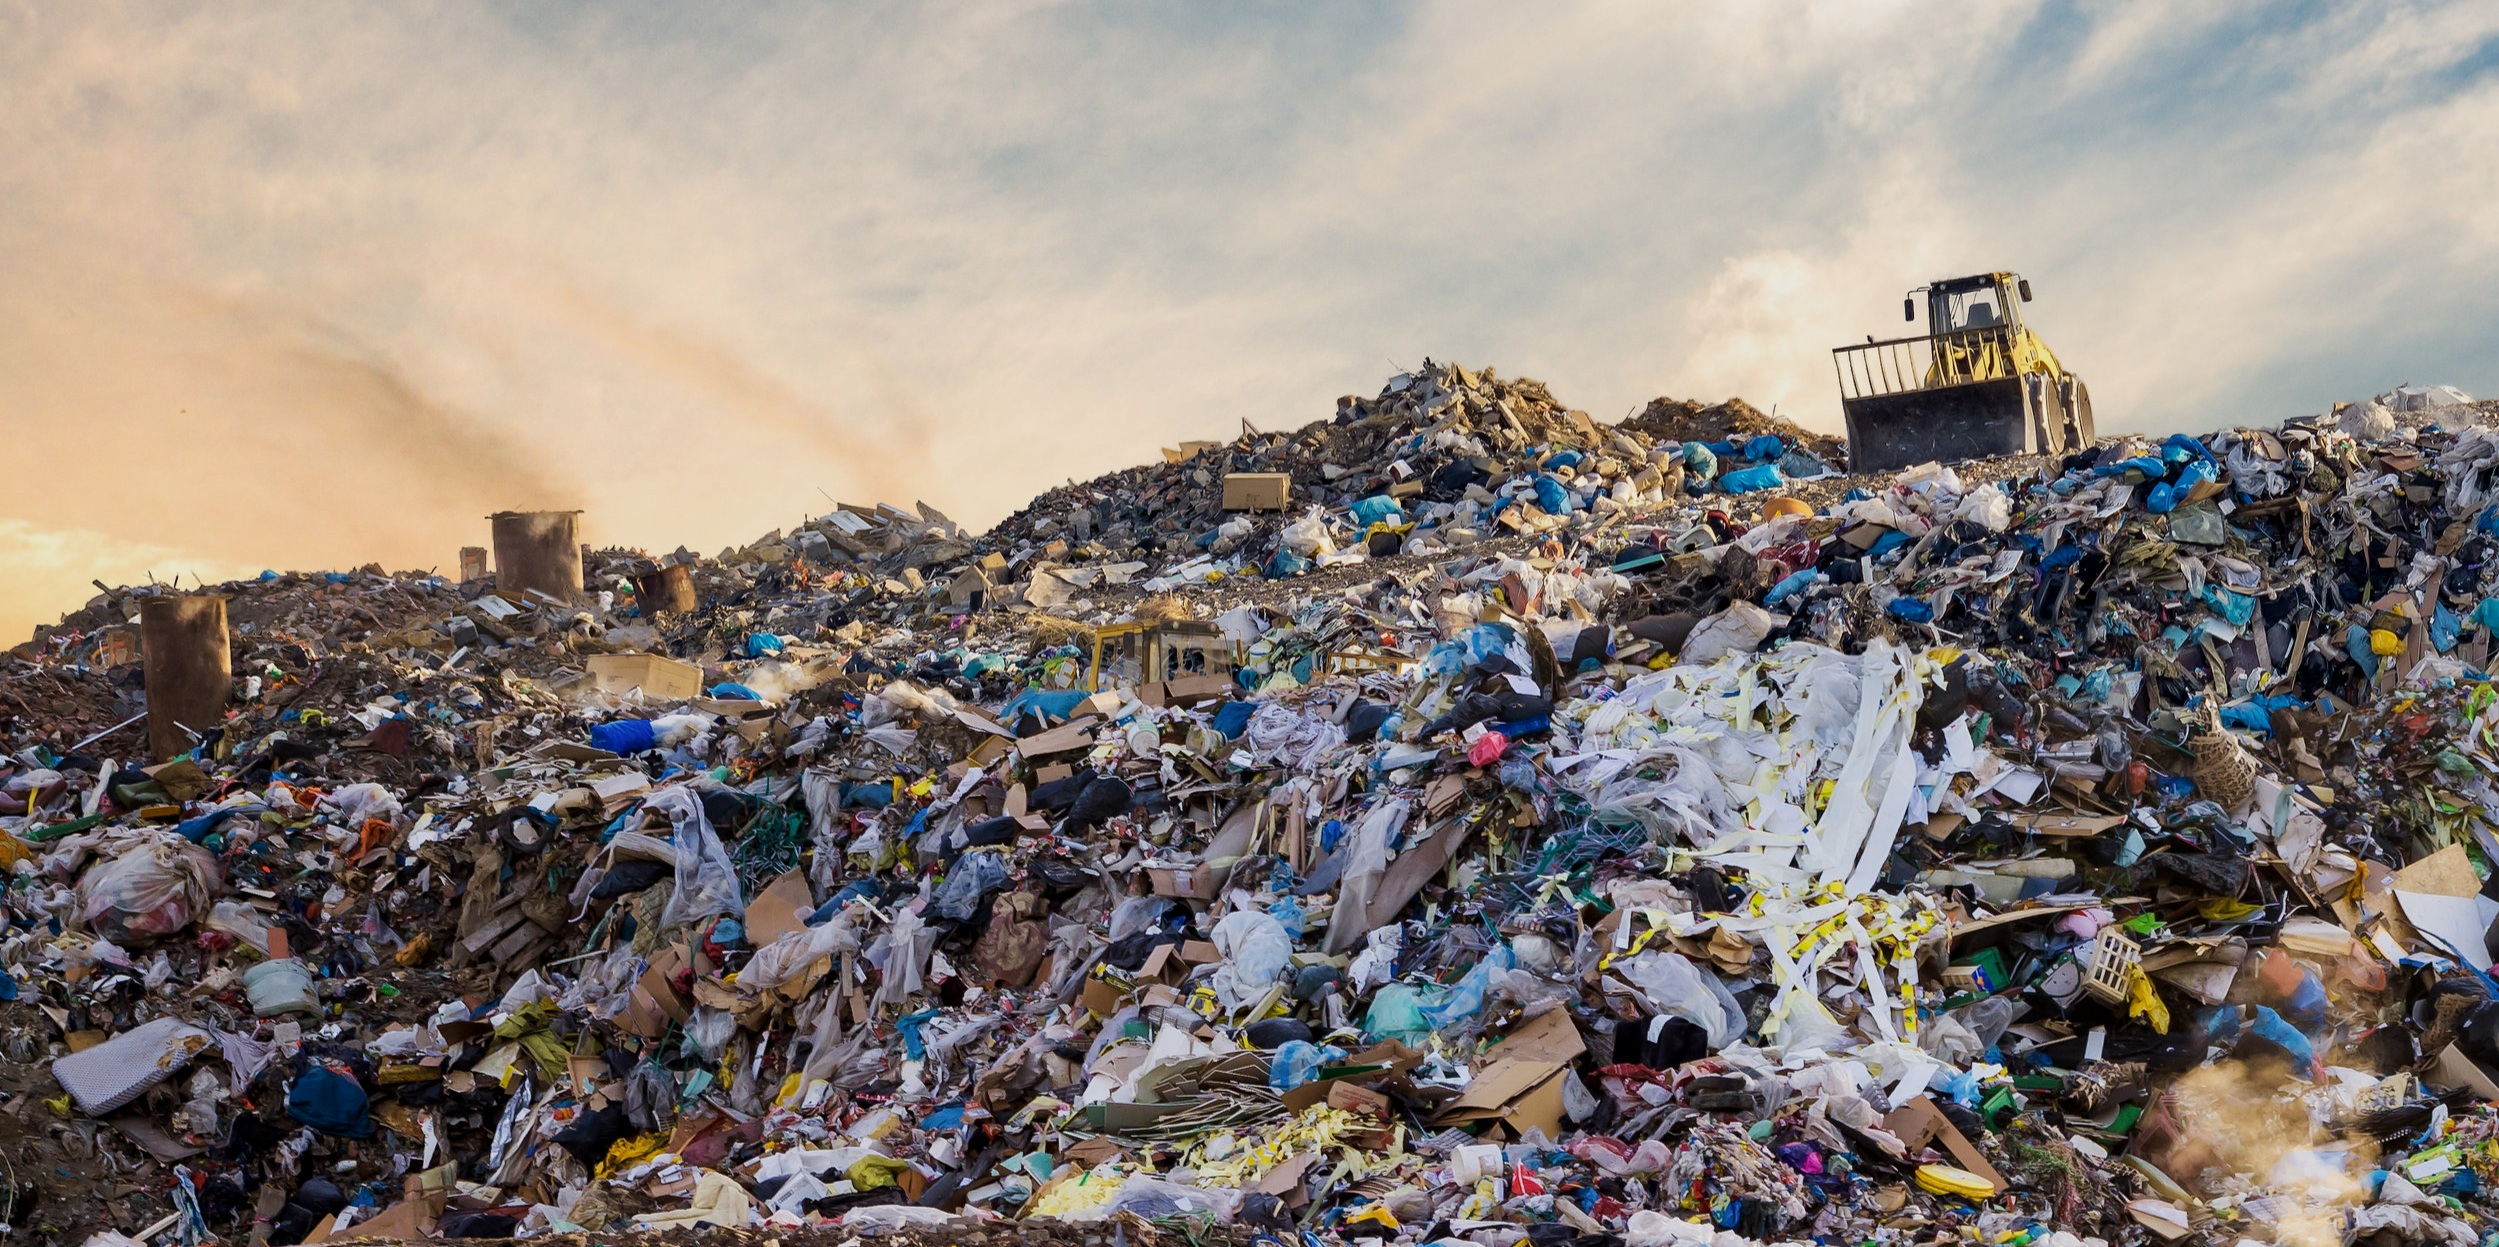 80 million pounds of landfill plastics diverted and reused since 2009. -